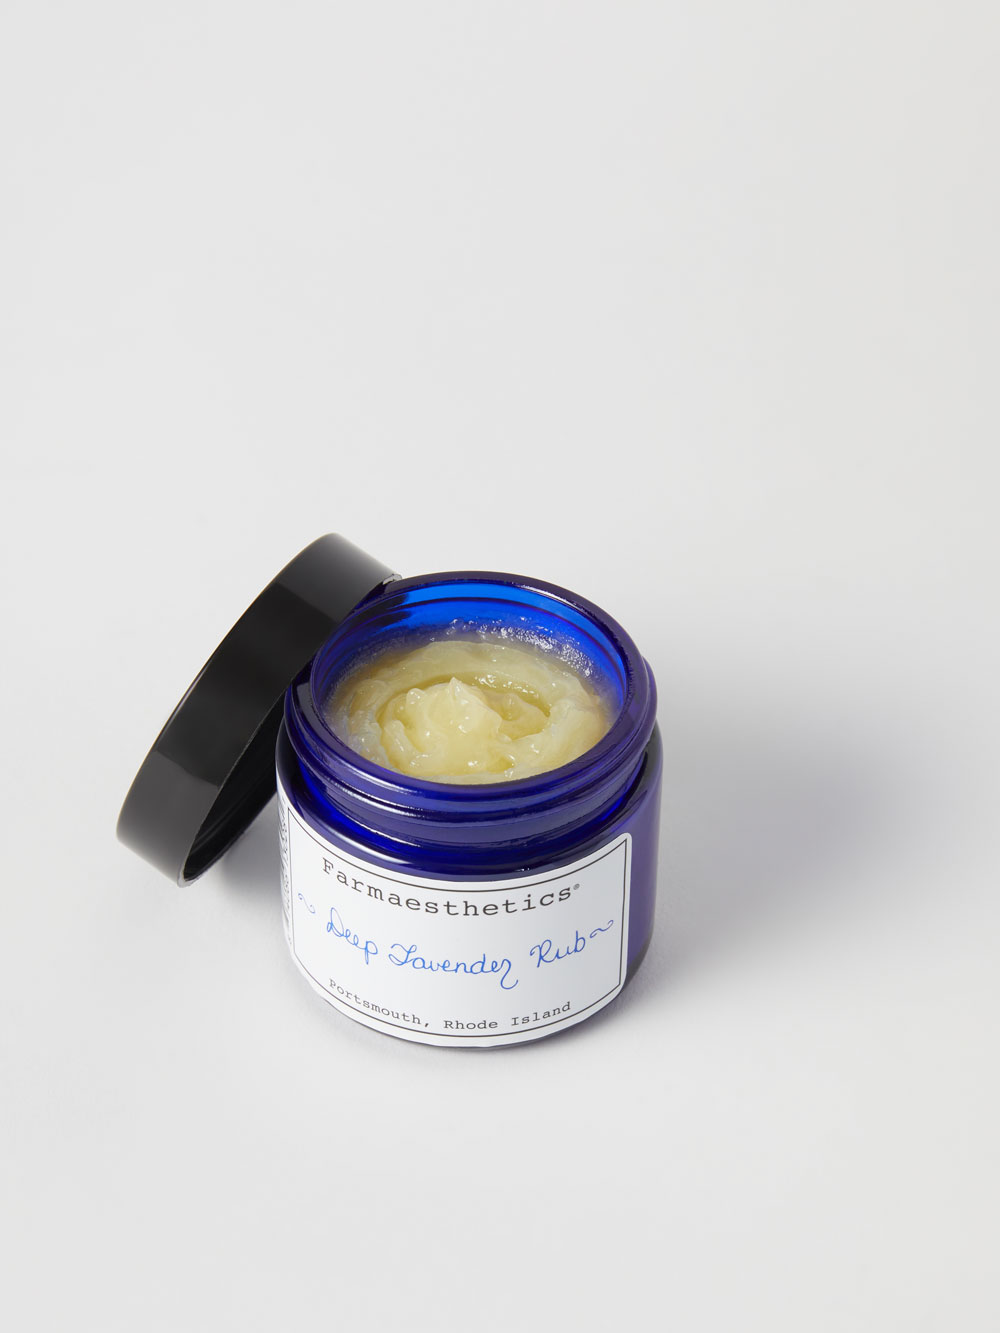 lavenderRub-nontoxic-beauty-sleep